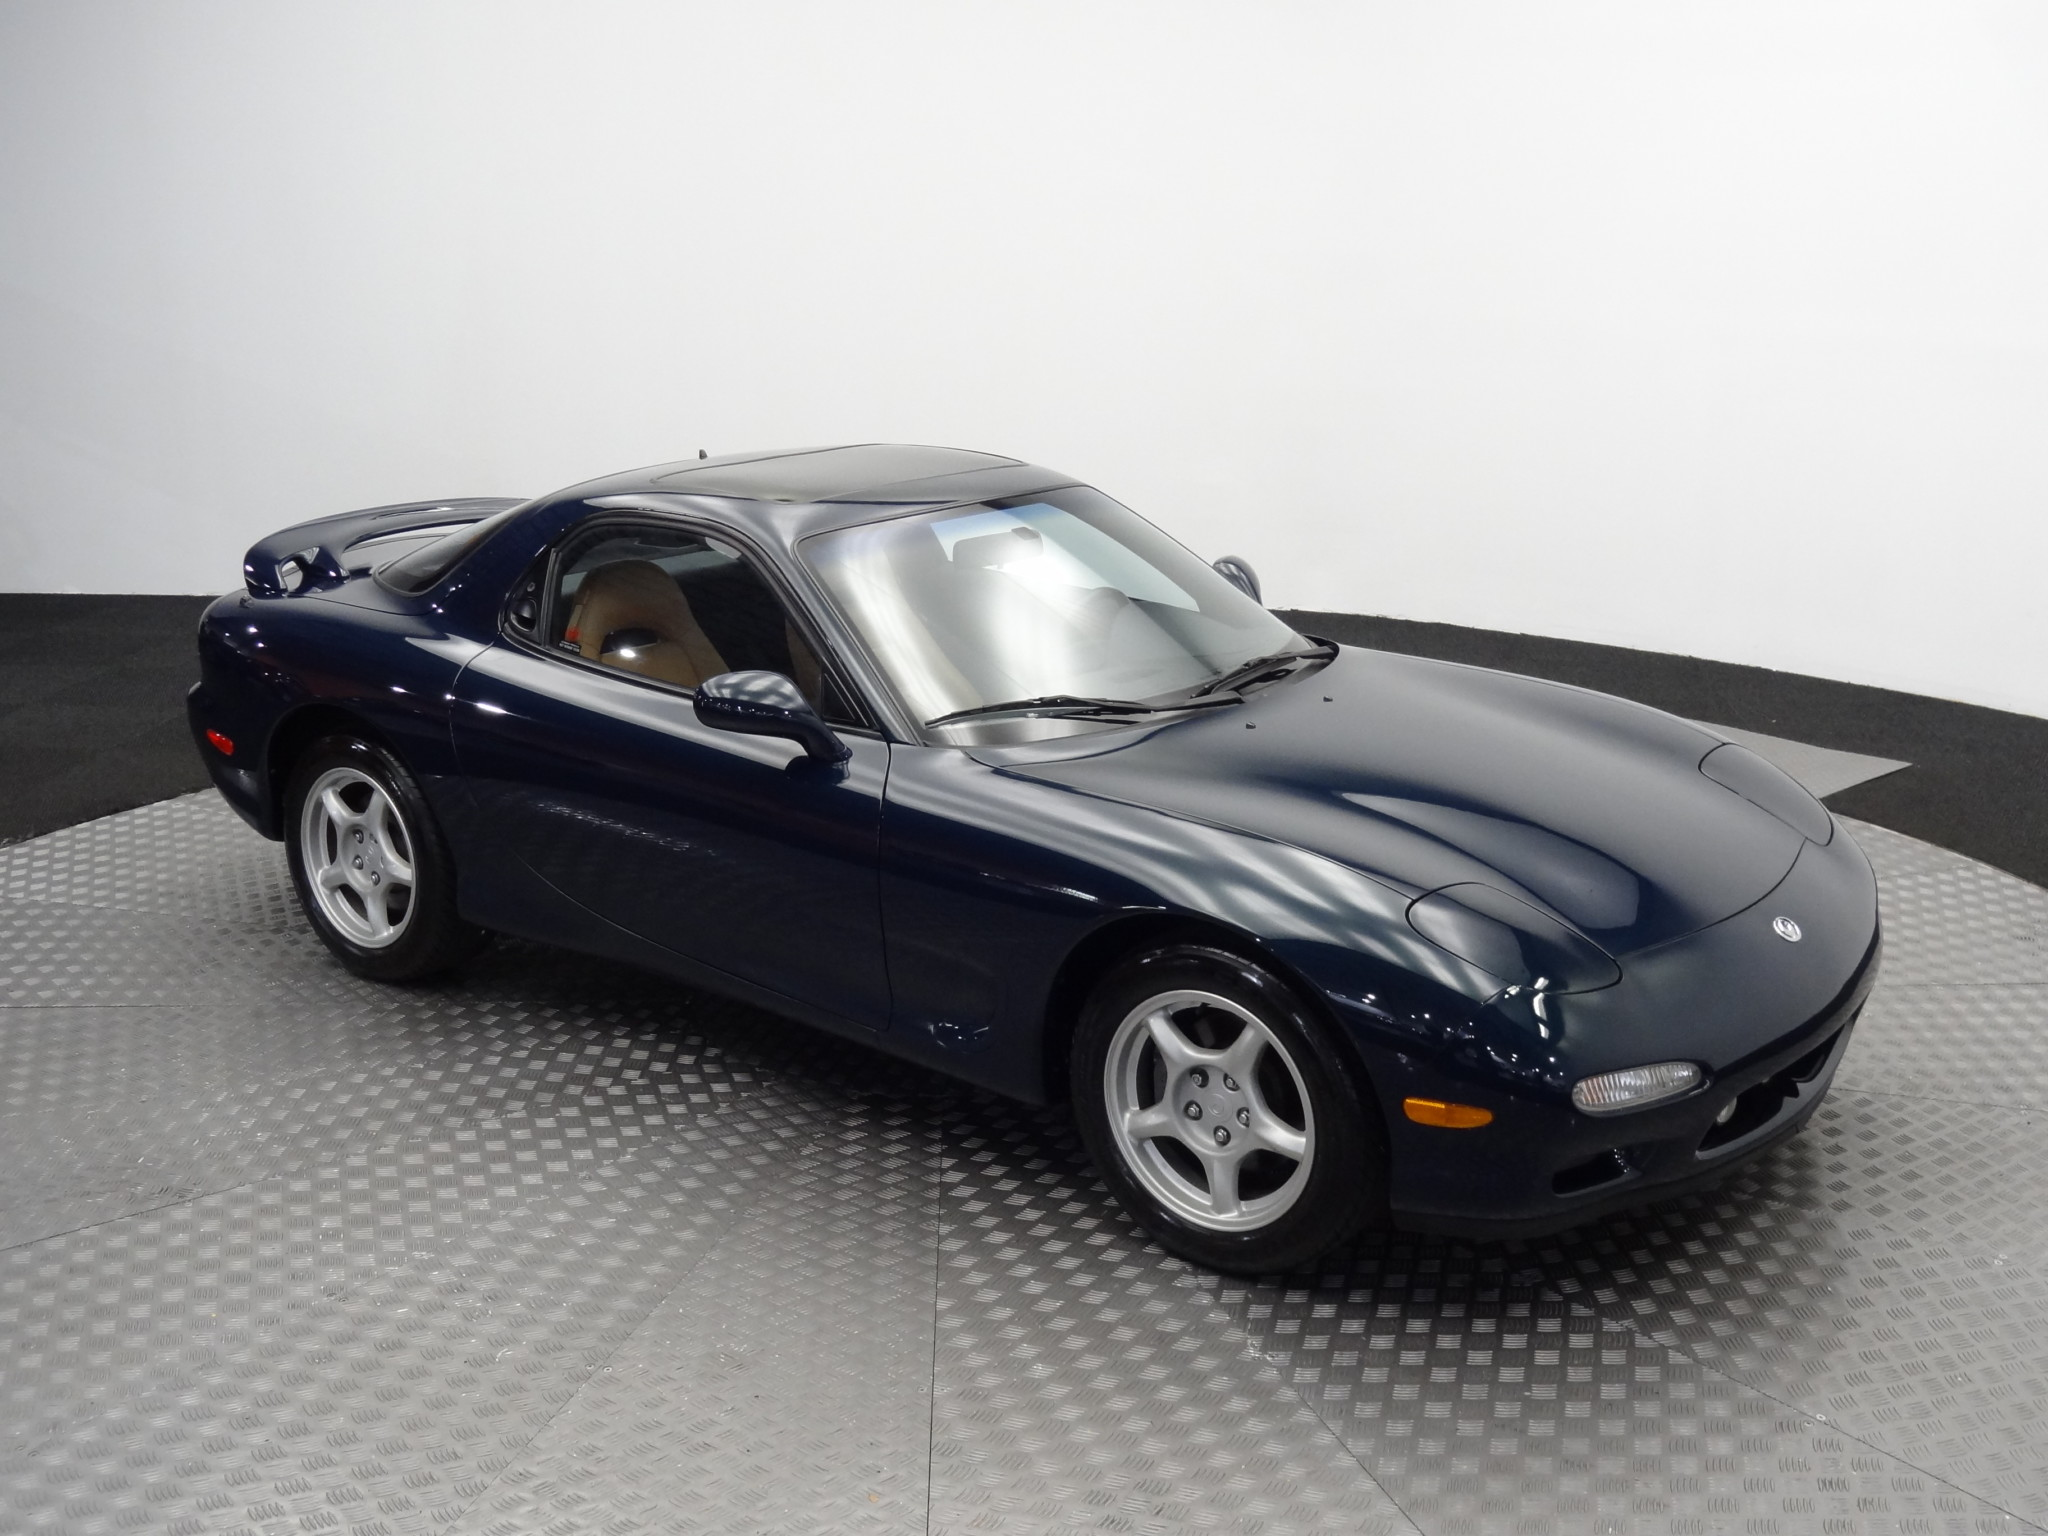 1994_Mazda_RX-7_for_sale_0012